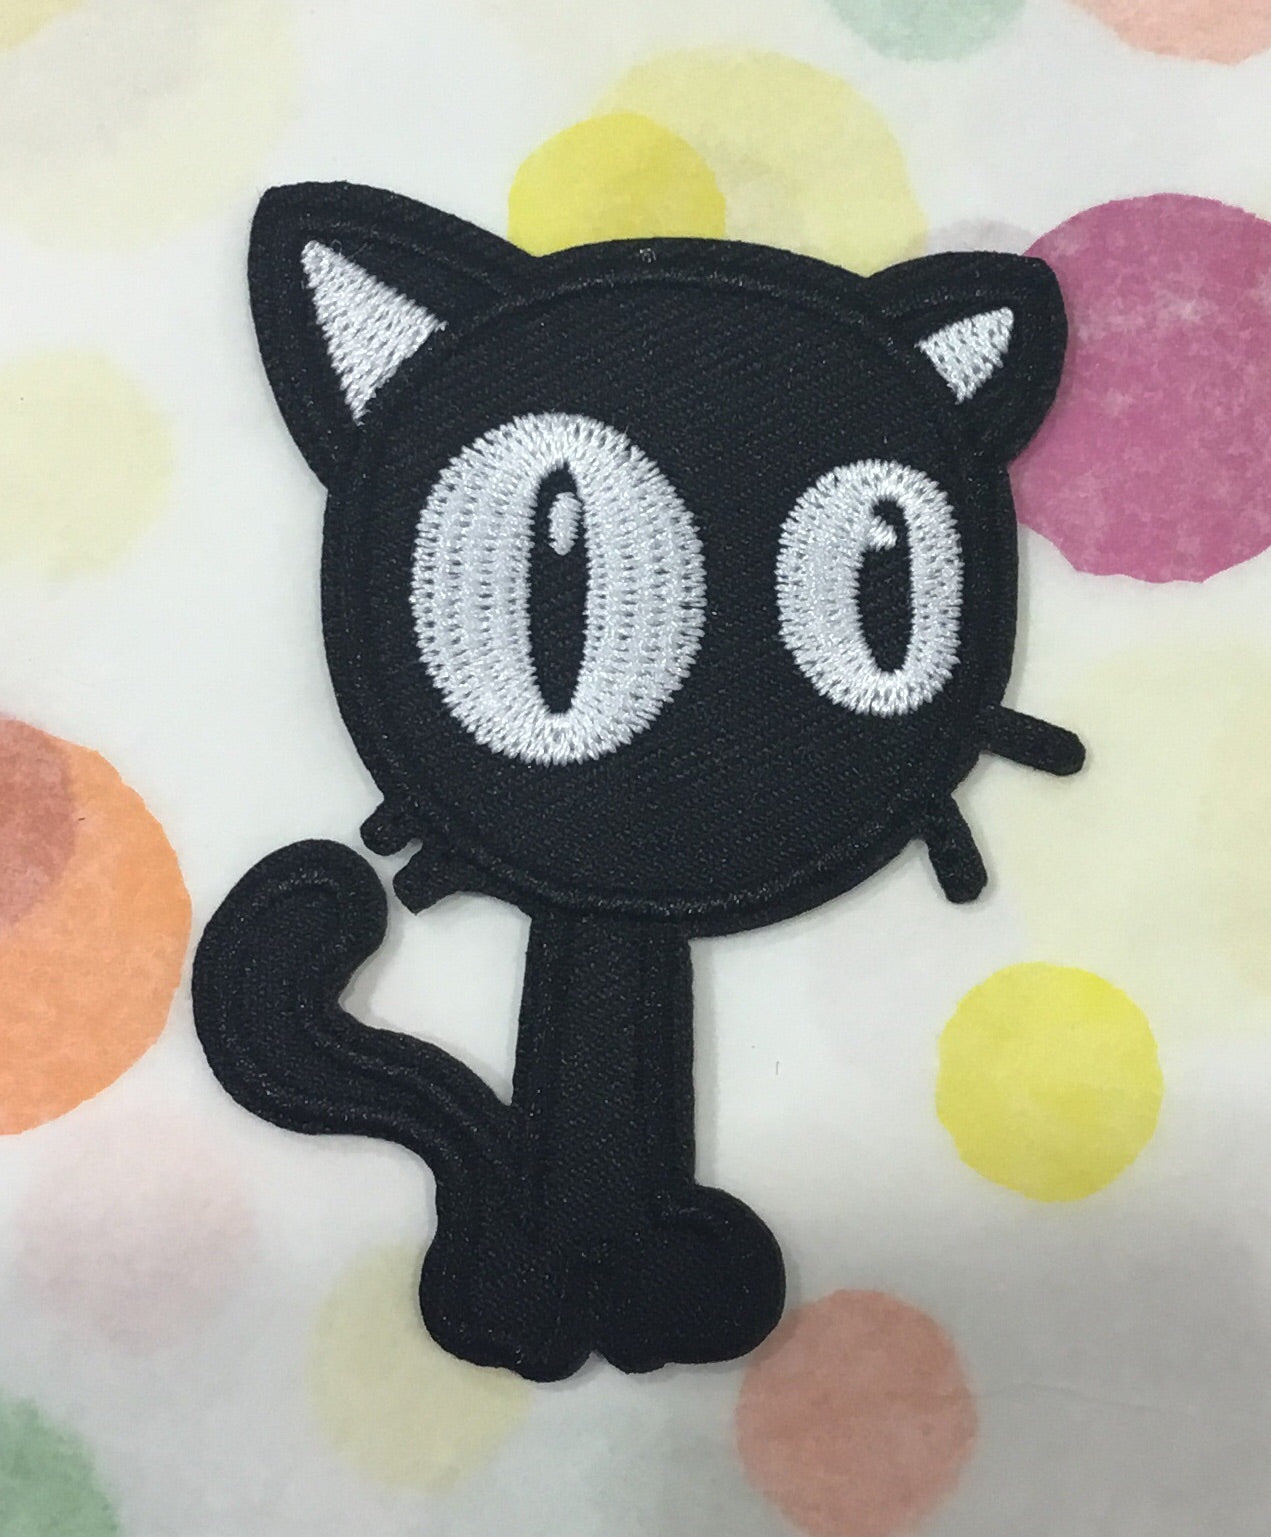 CLOTH PATCH - Black cat with huge eyes - Atomic Retro